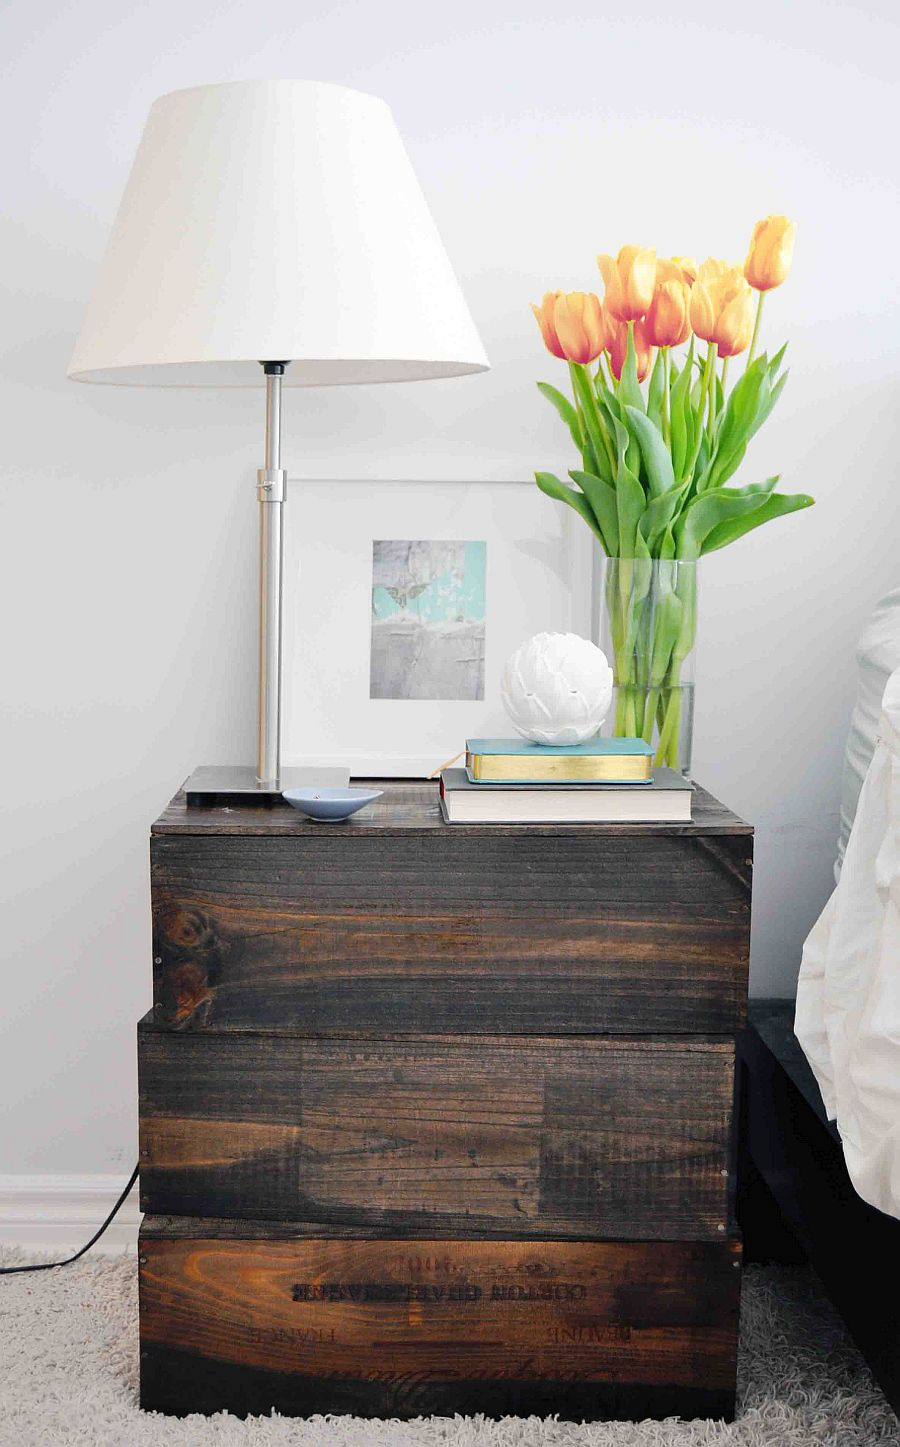 Budget-friendly bedside wooden table is a delight to craft!